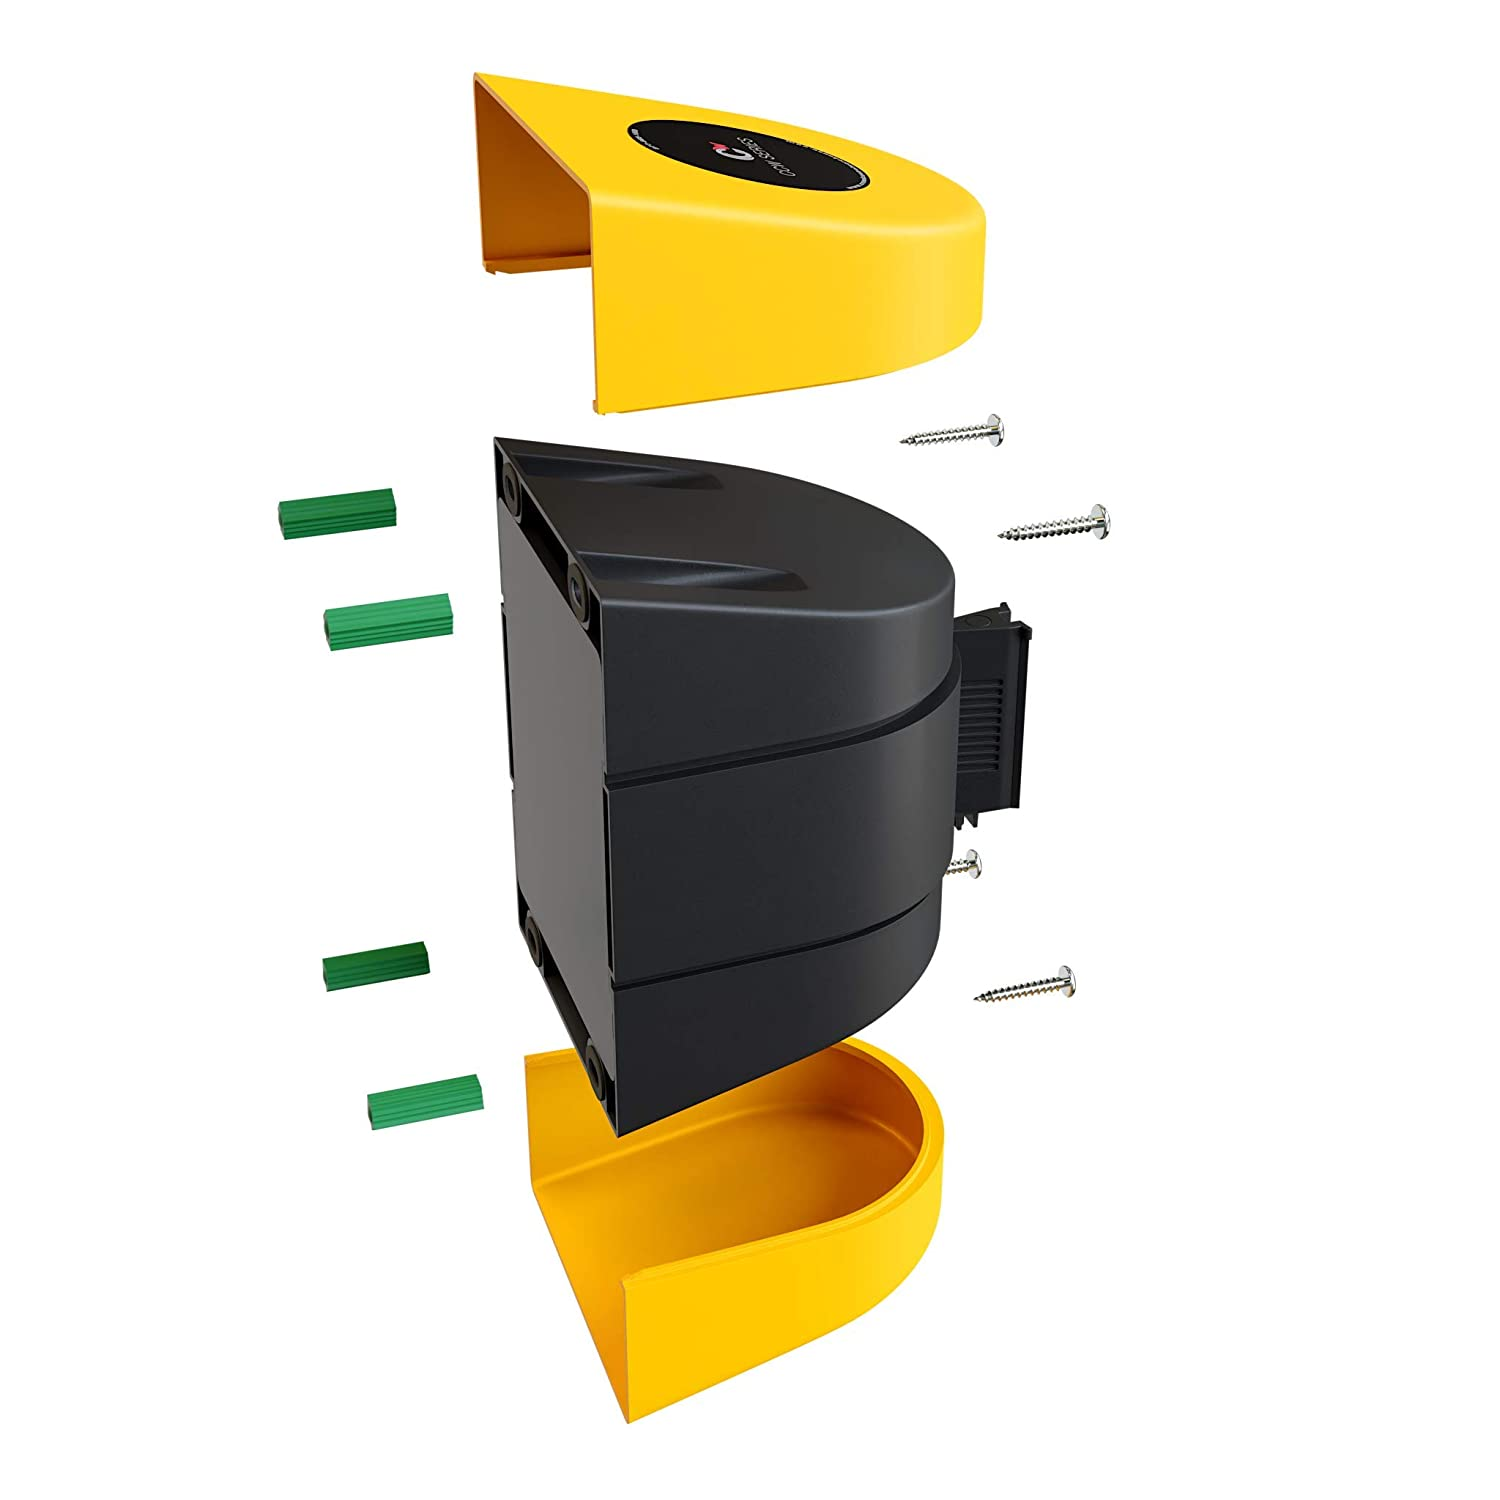 Fixed Wall Mount Retractable Belt Barrier with ABS Case-CCW Series WMB-220 15 Foot, Caution Do Not Enter Belt with Black ABS Case